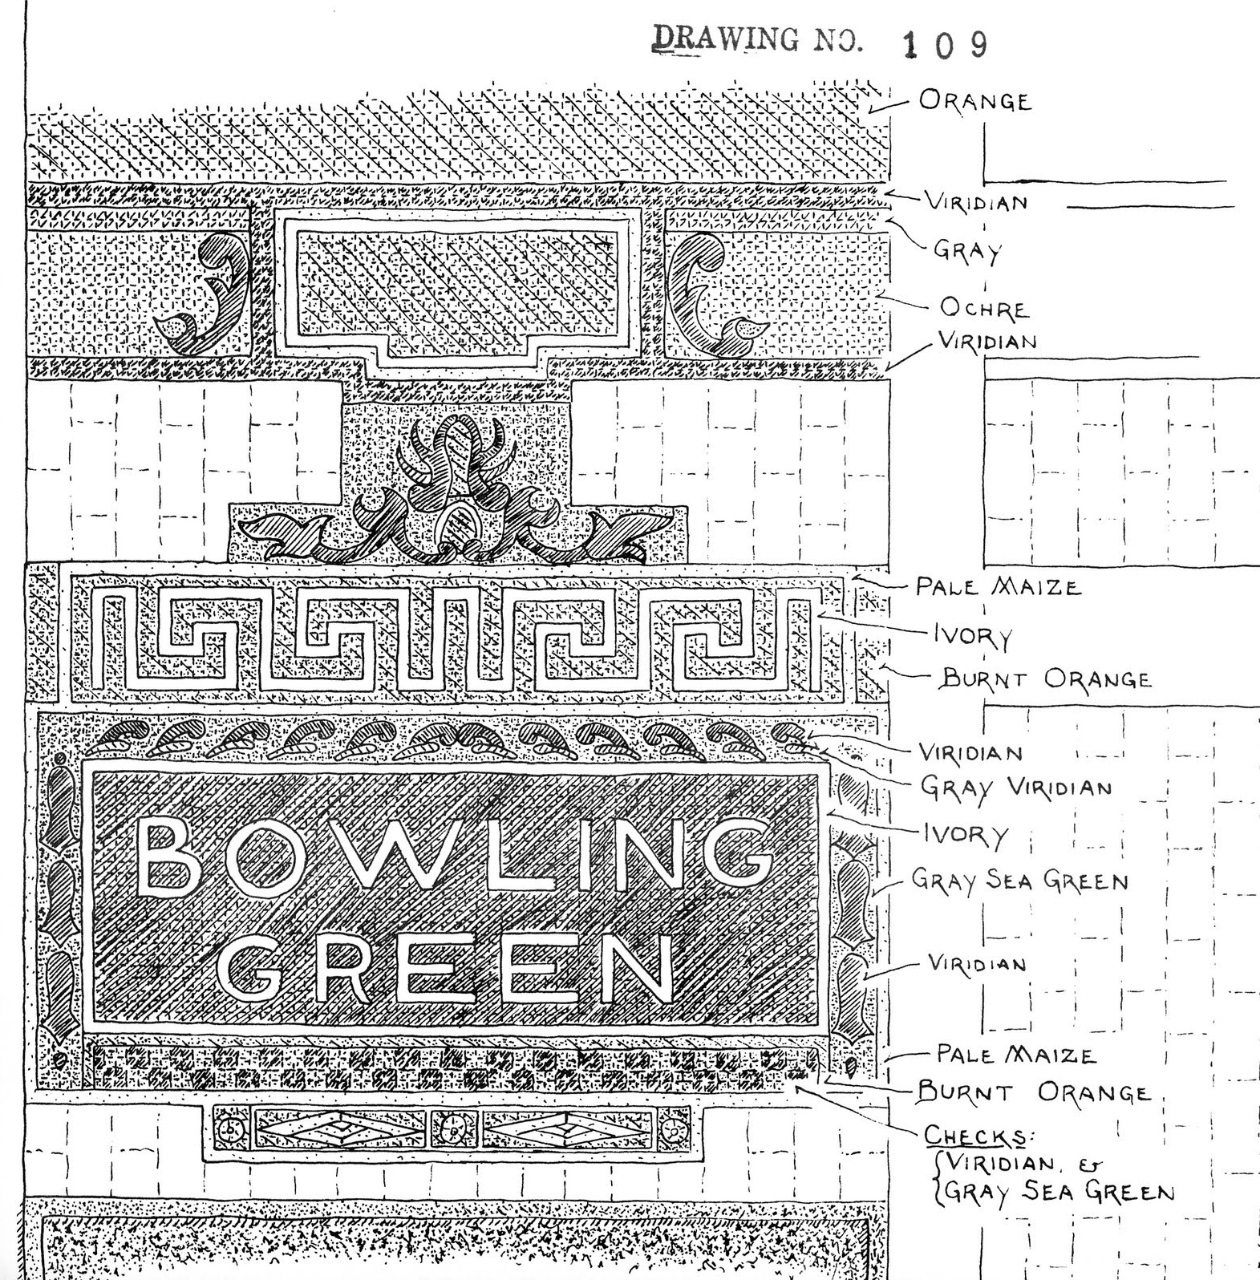 Sketch by Philip Copp from the Bowling Green station by Philip Copp (via New York Bound Books)